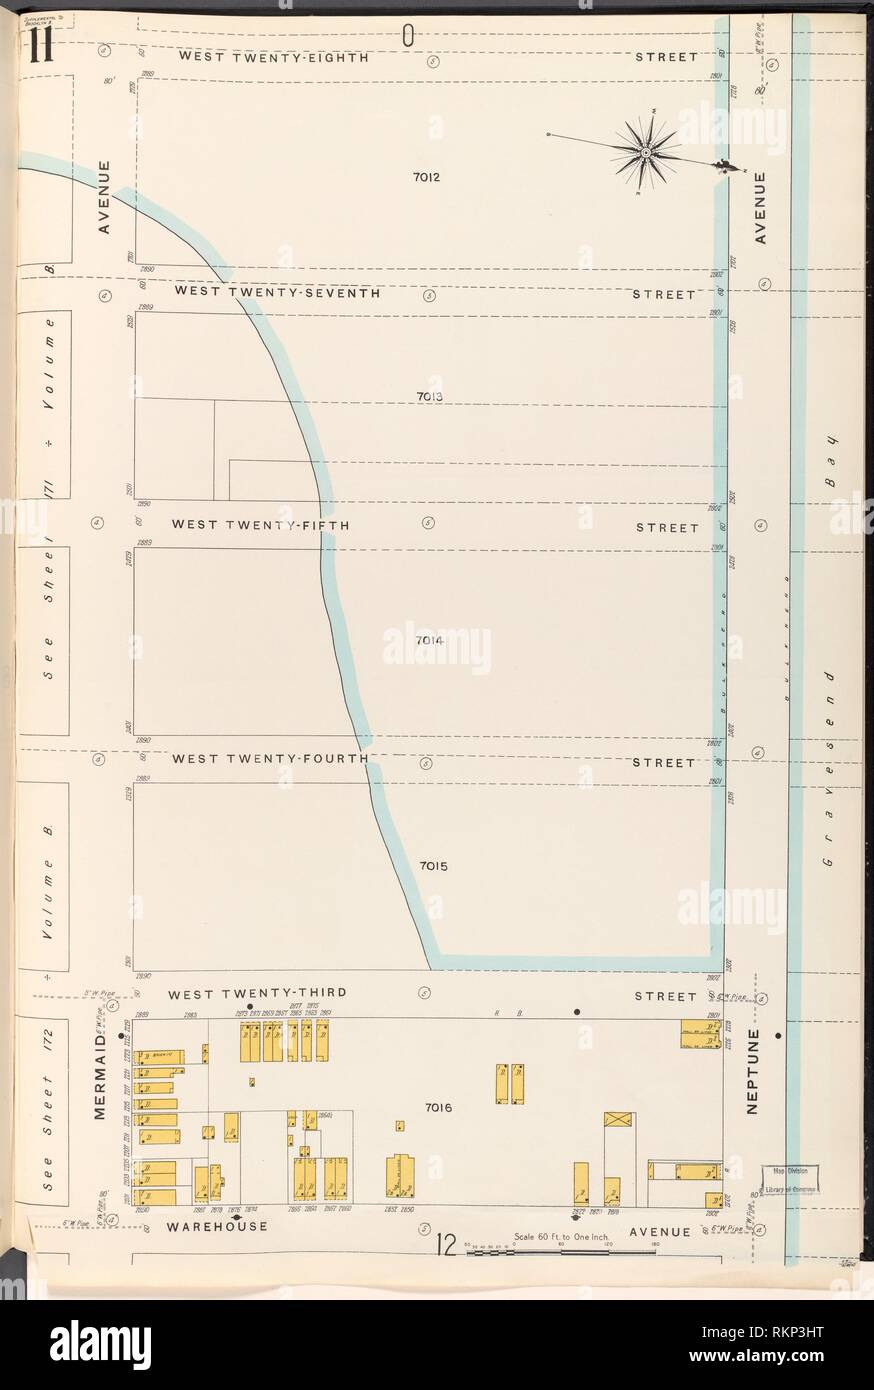 medium resolution of brooklyn vol b plate no 11 map bounded by w 28th st